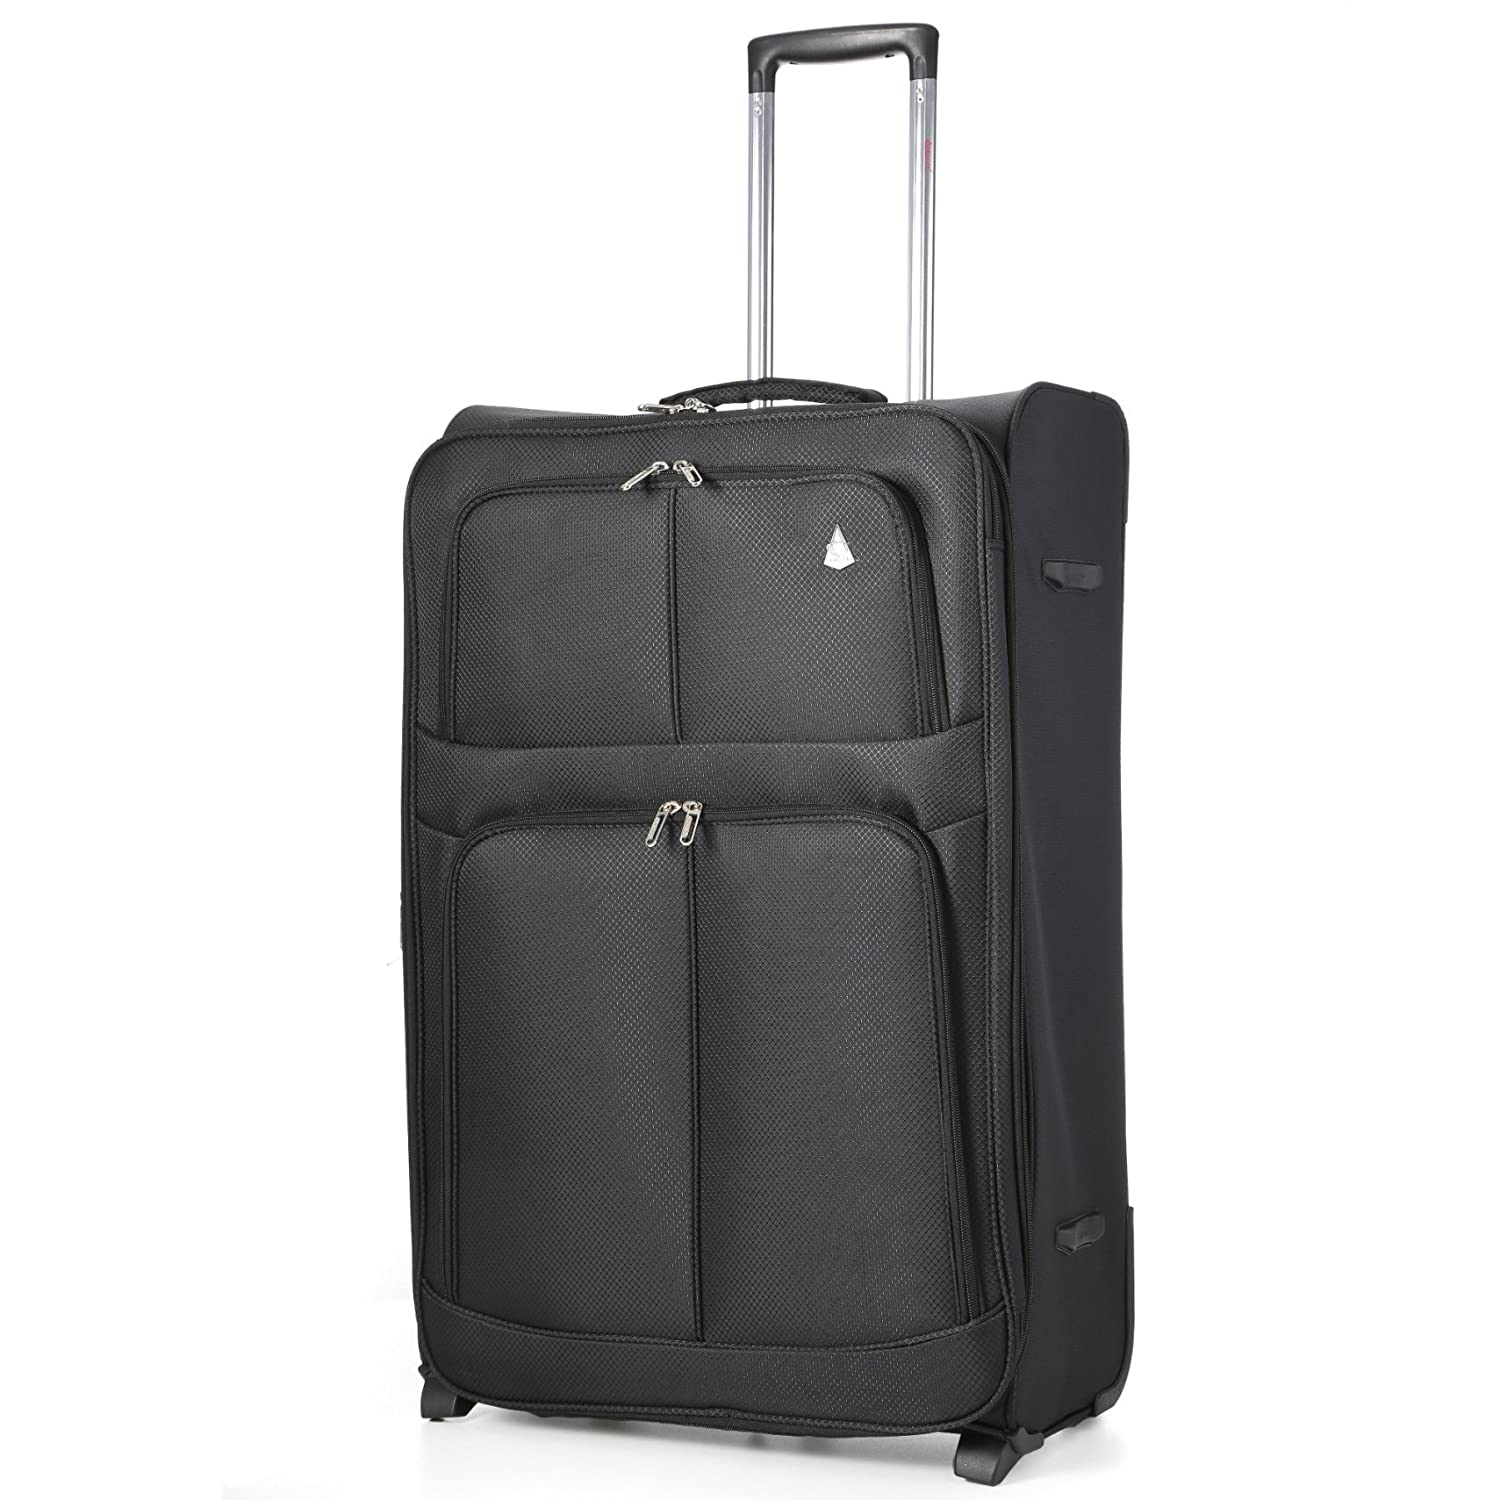 Aerolite The London Collection equipaje inch cm negro